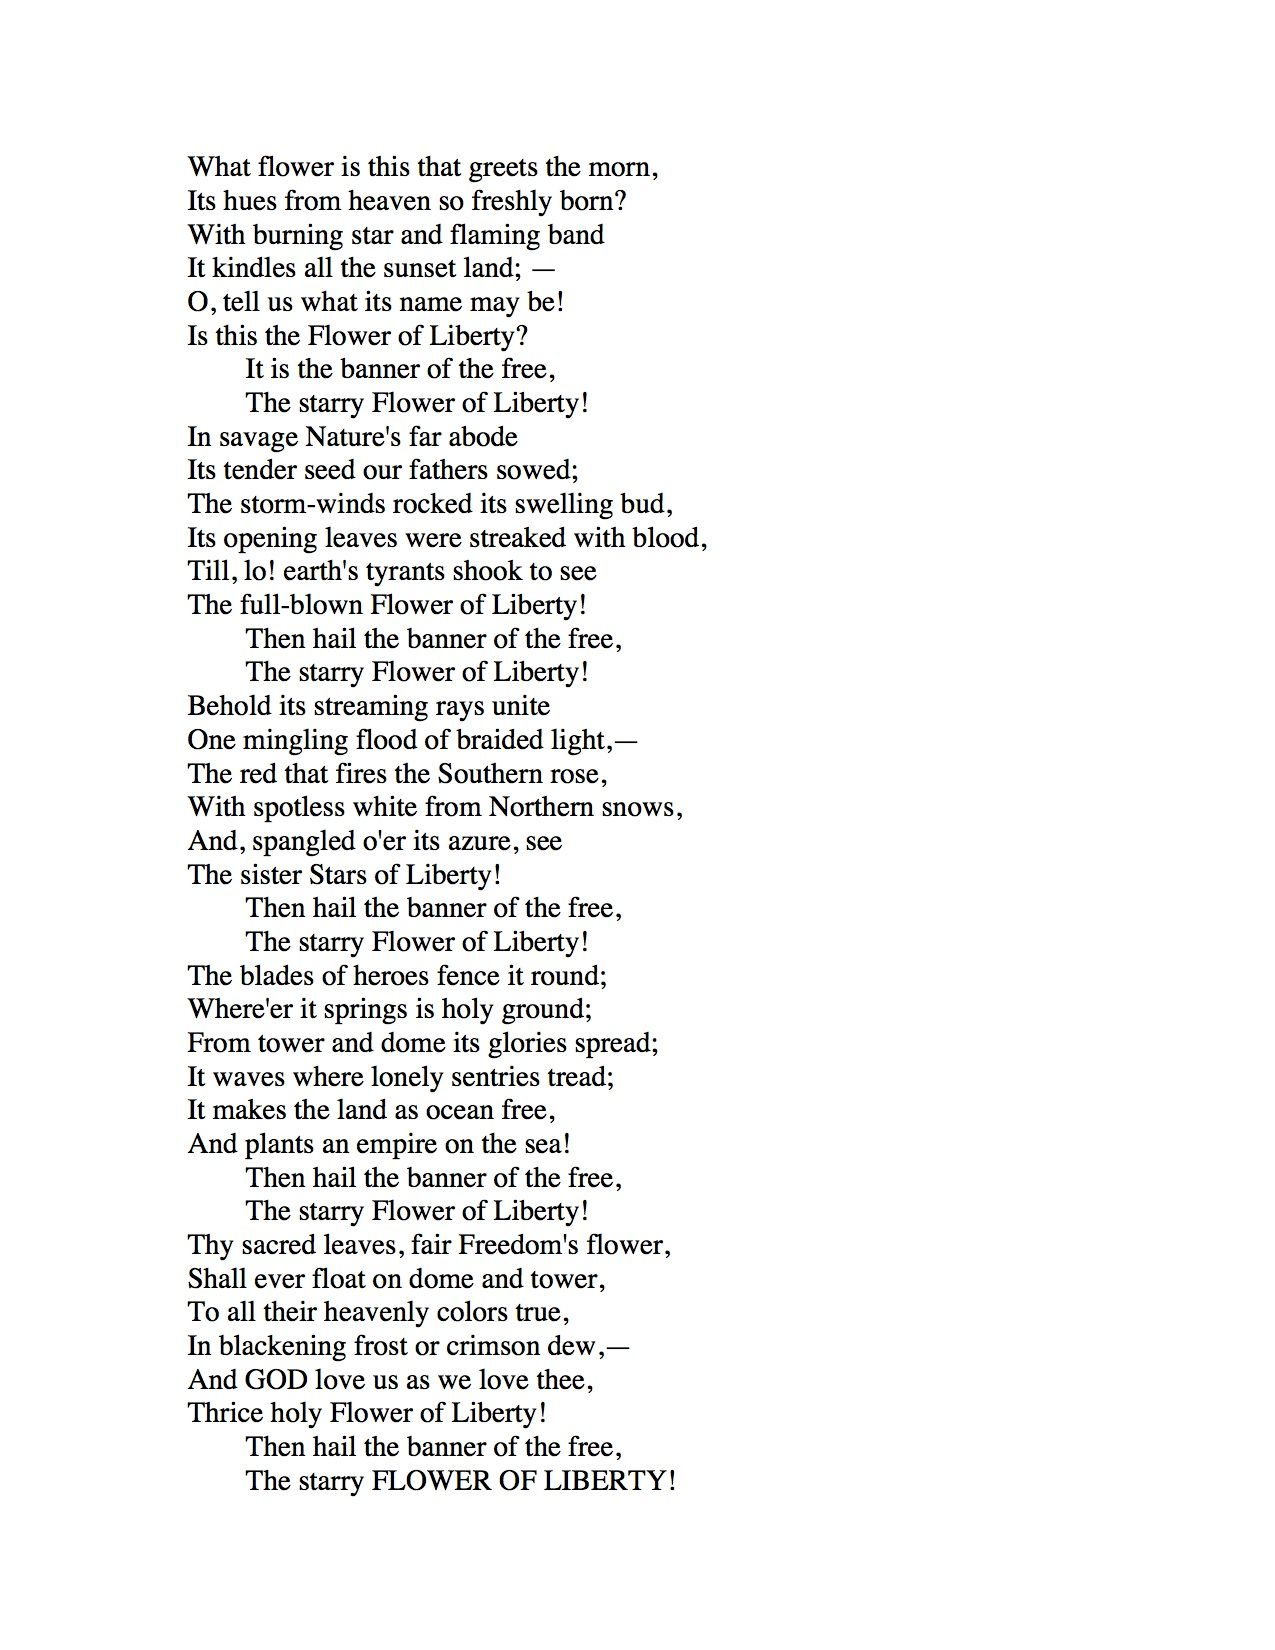 The Flower Of Liberty I Chose This Poem To Help Support My Essay  The Flower Of Liberty I Chose This Poem To Help Support My Essay Because  It Describes What America Stands For The Banner Of The Free The Starry  Flower